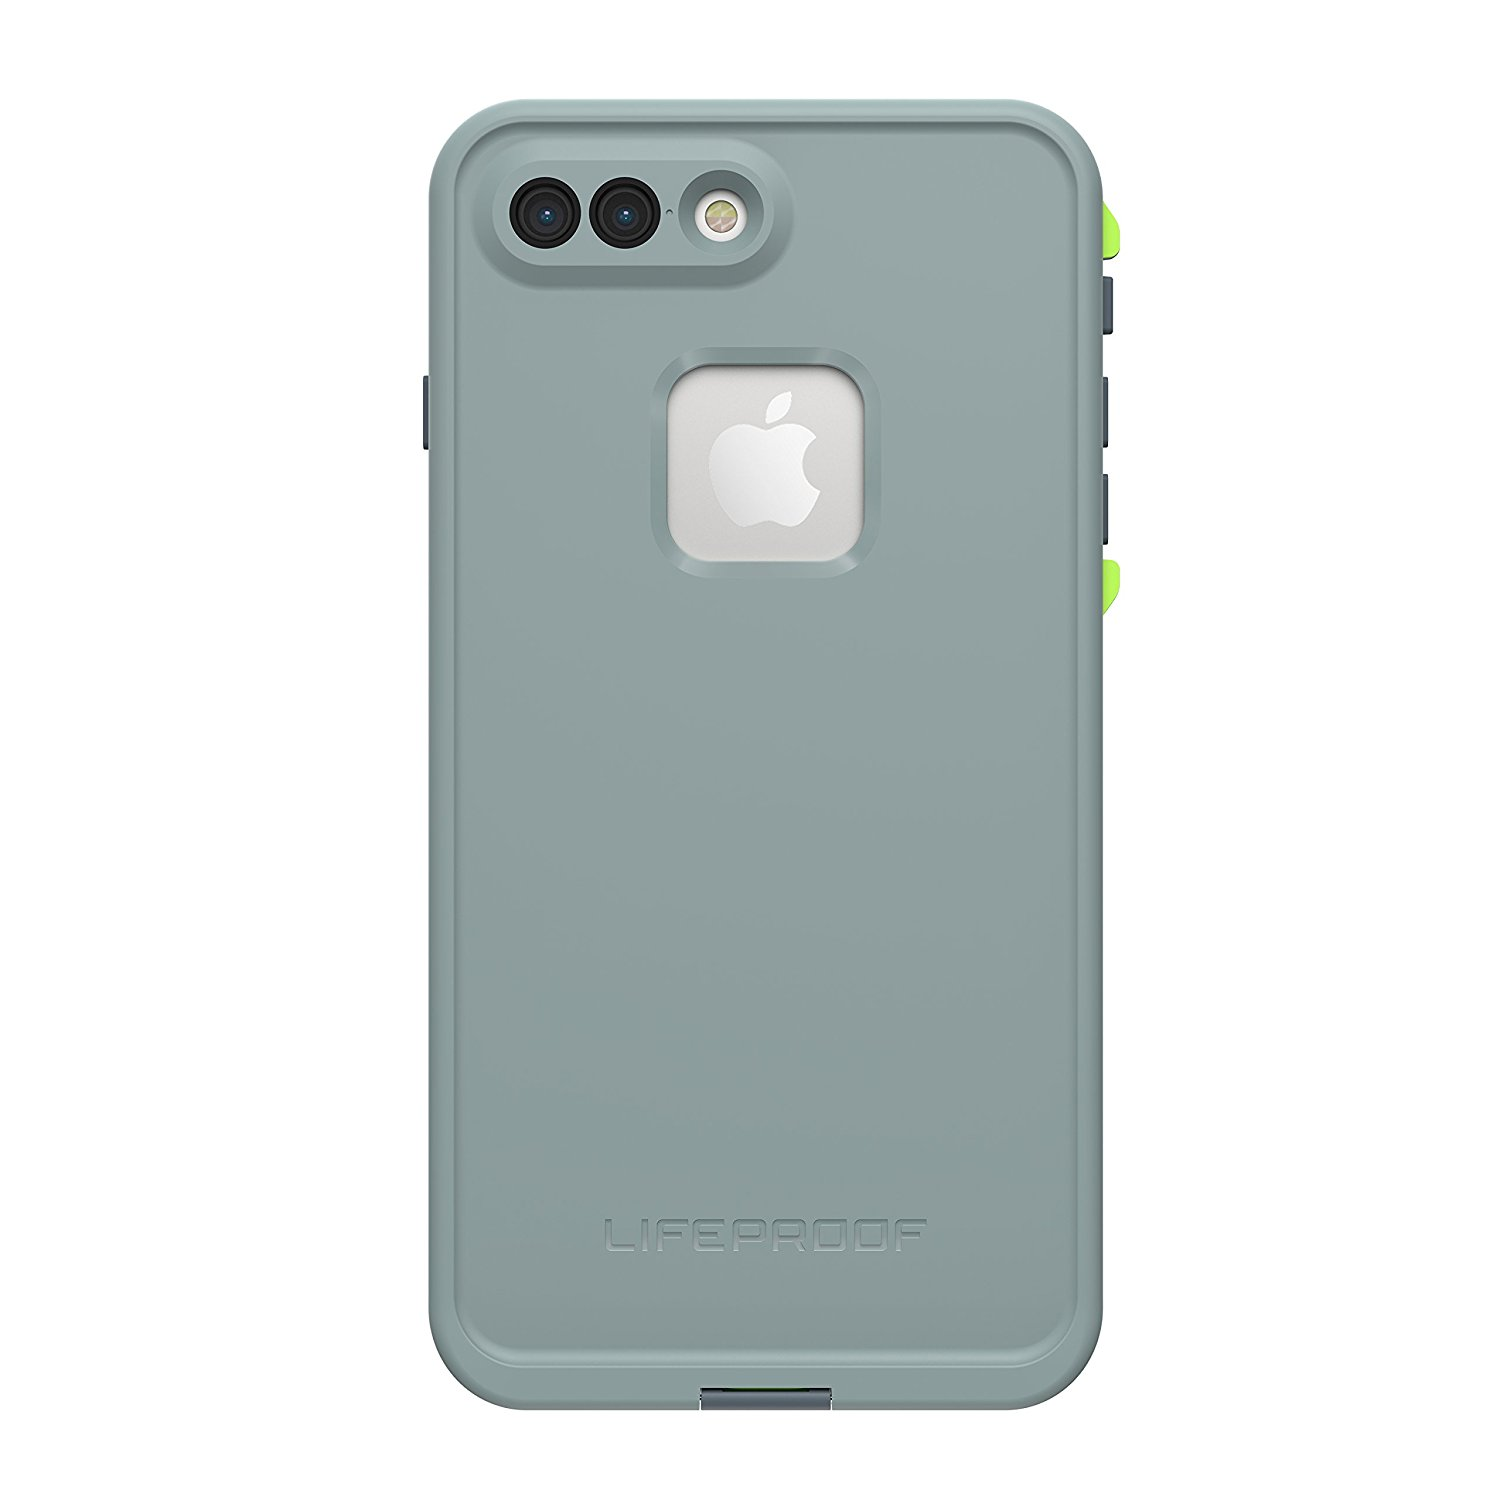 online retailer b3d45 bb773 Lifeproof Fre Case for iPhone 8 Plus and iPhone 7 Plus, Wipeout ...